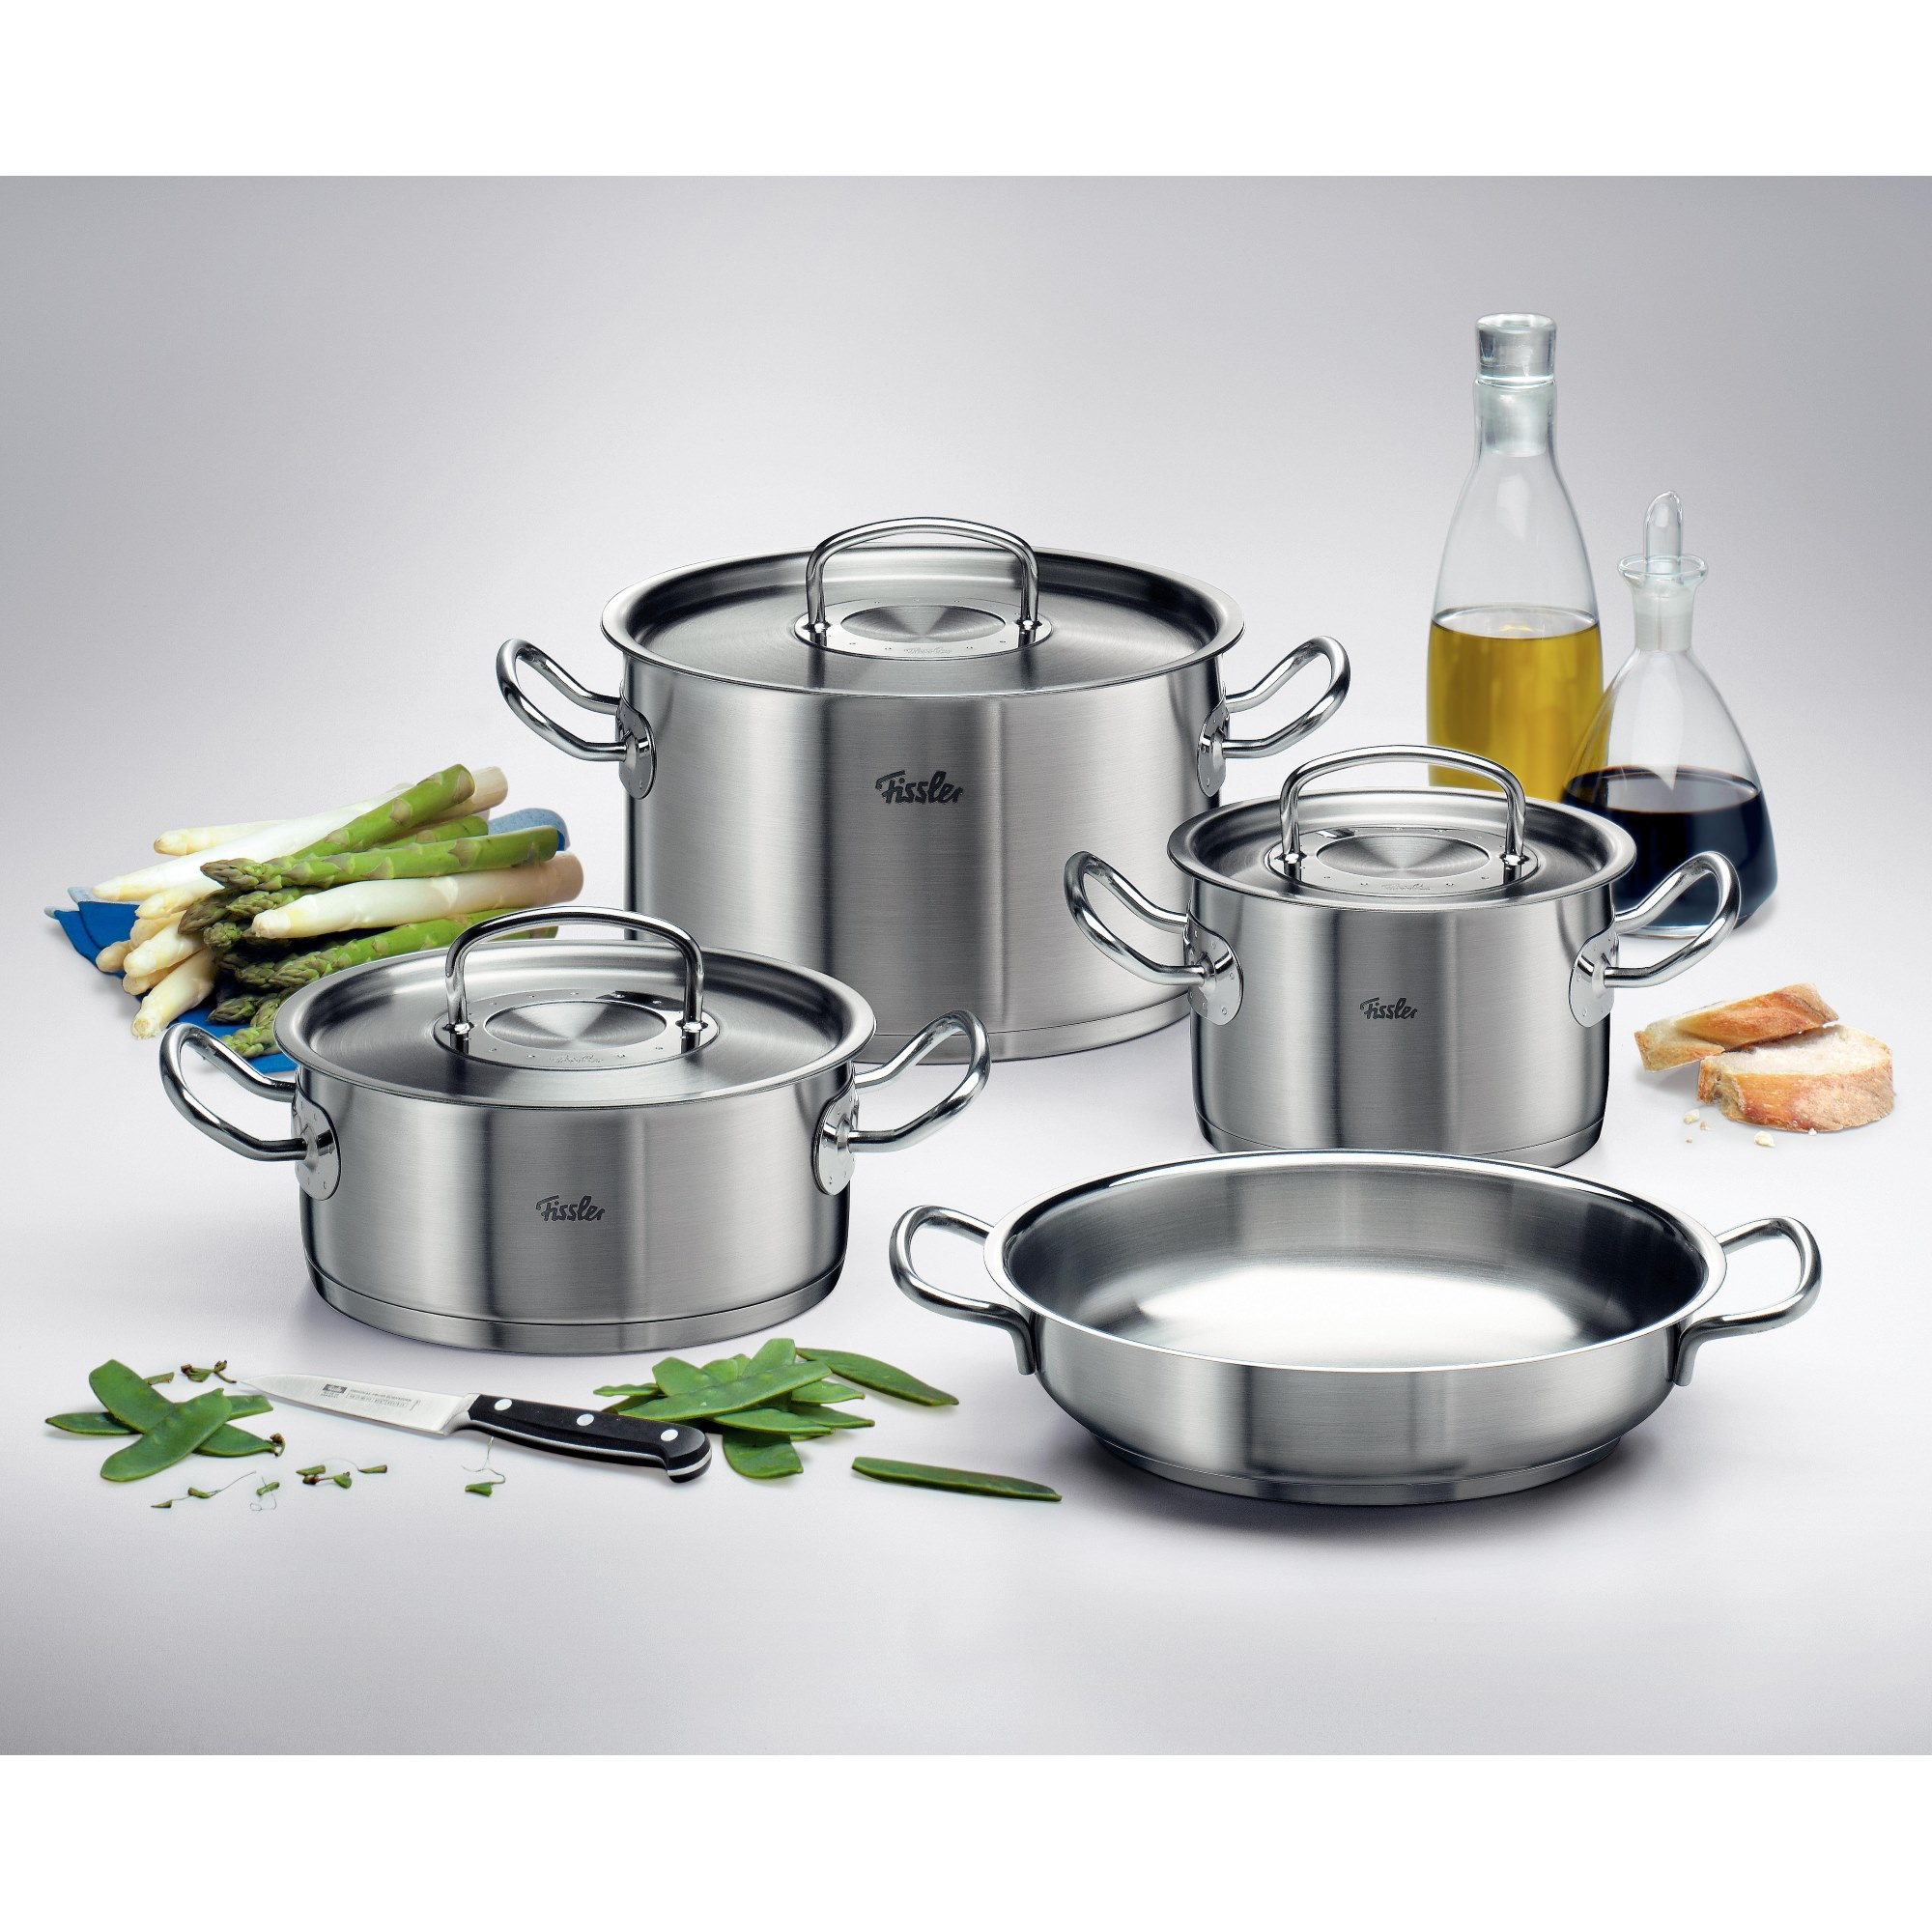 Fissler Topf Set Original Profi Collection 4 Teilig Mit